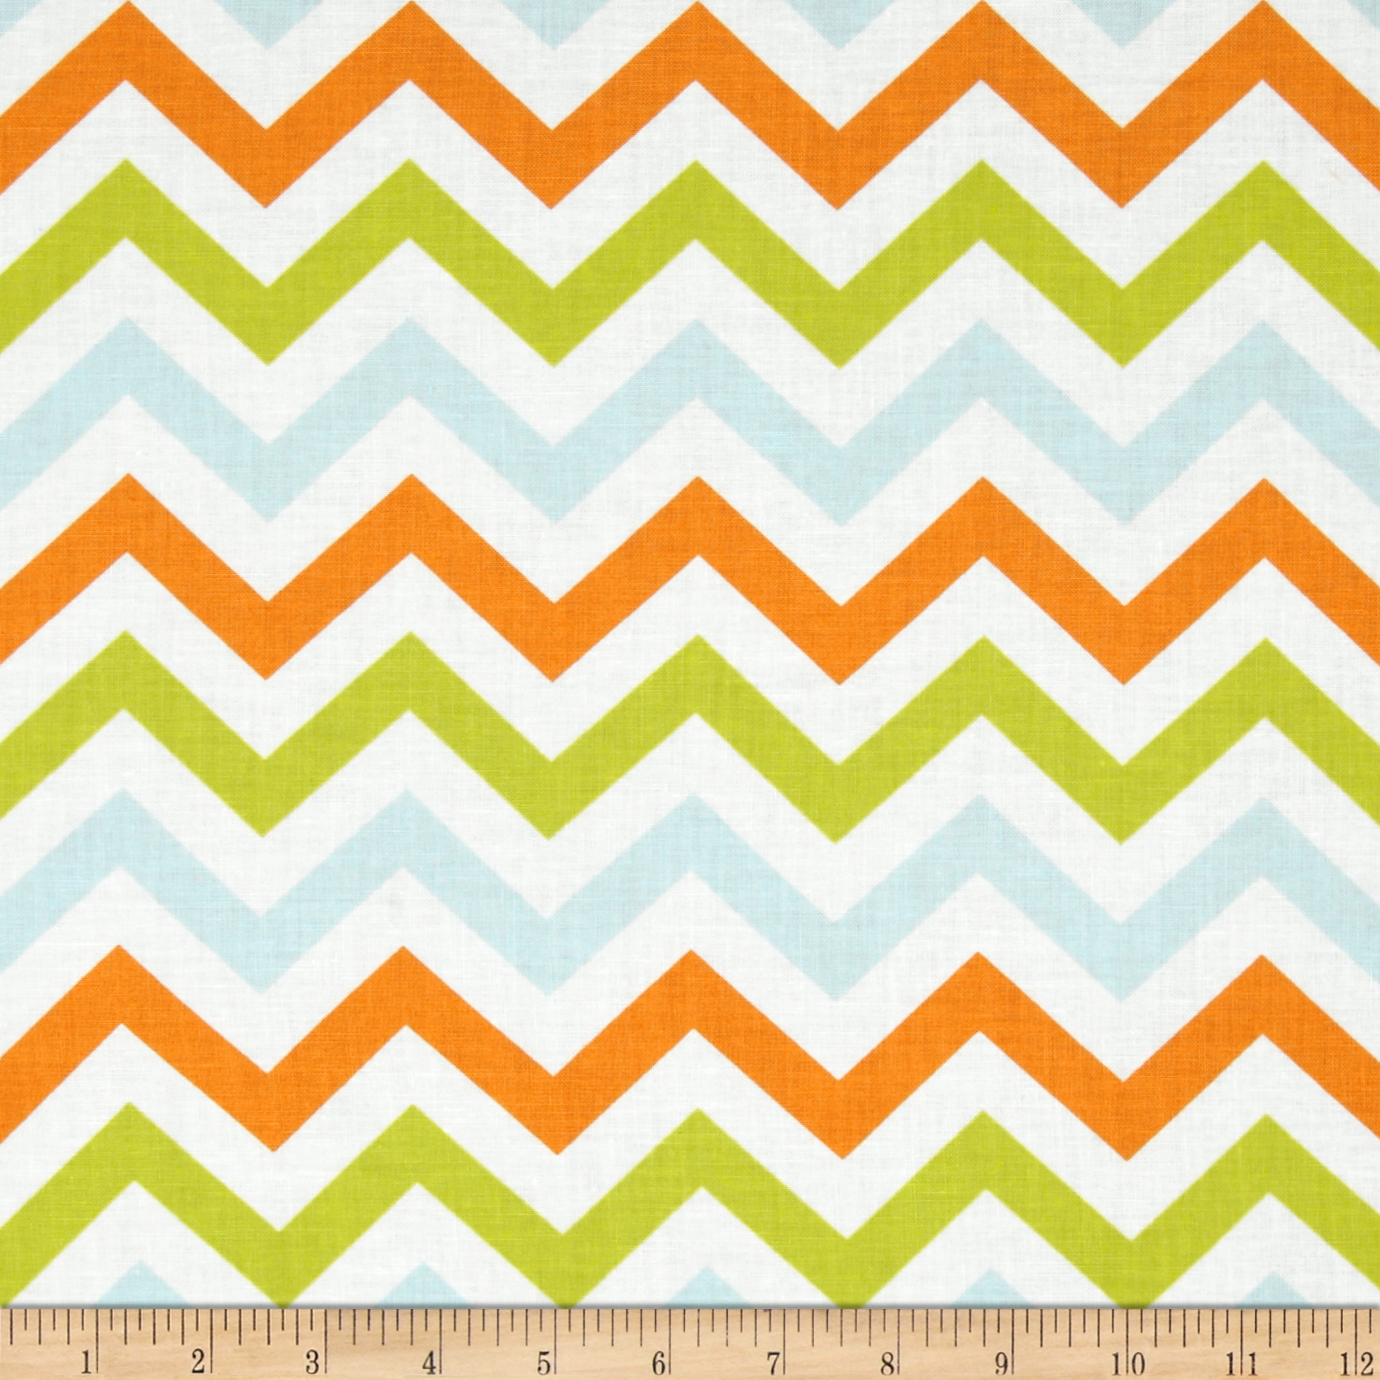 Moda Mixed Bag Zig Zag Sprouts Fabric